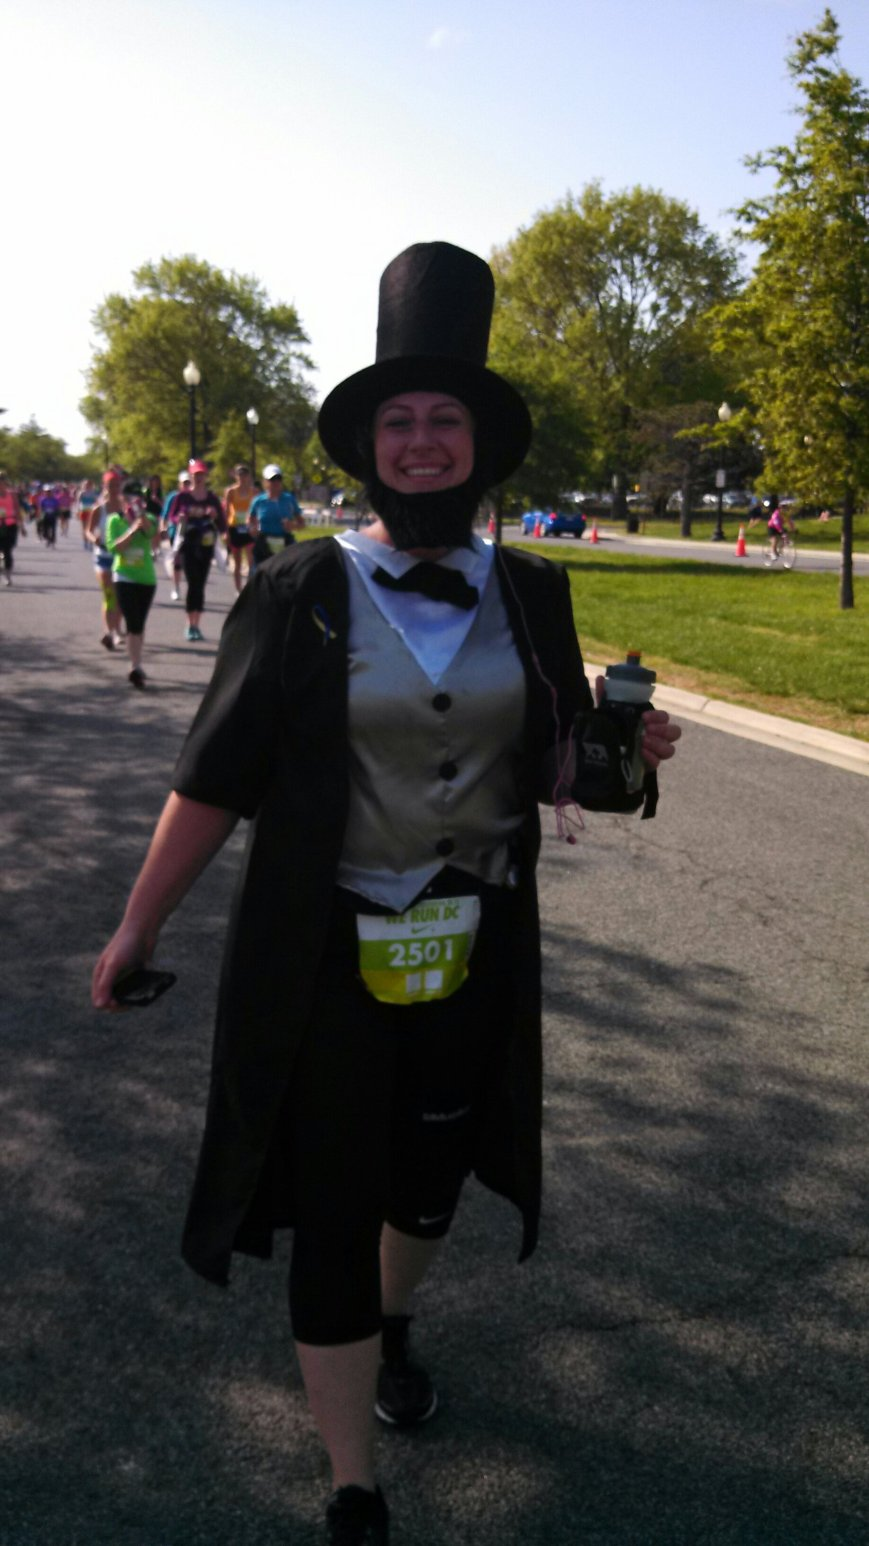 Passed Lincoln at mile 8:)